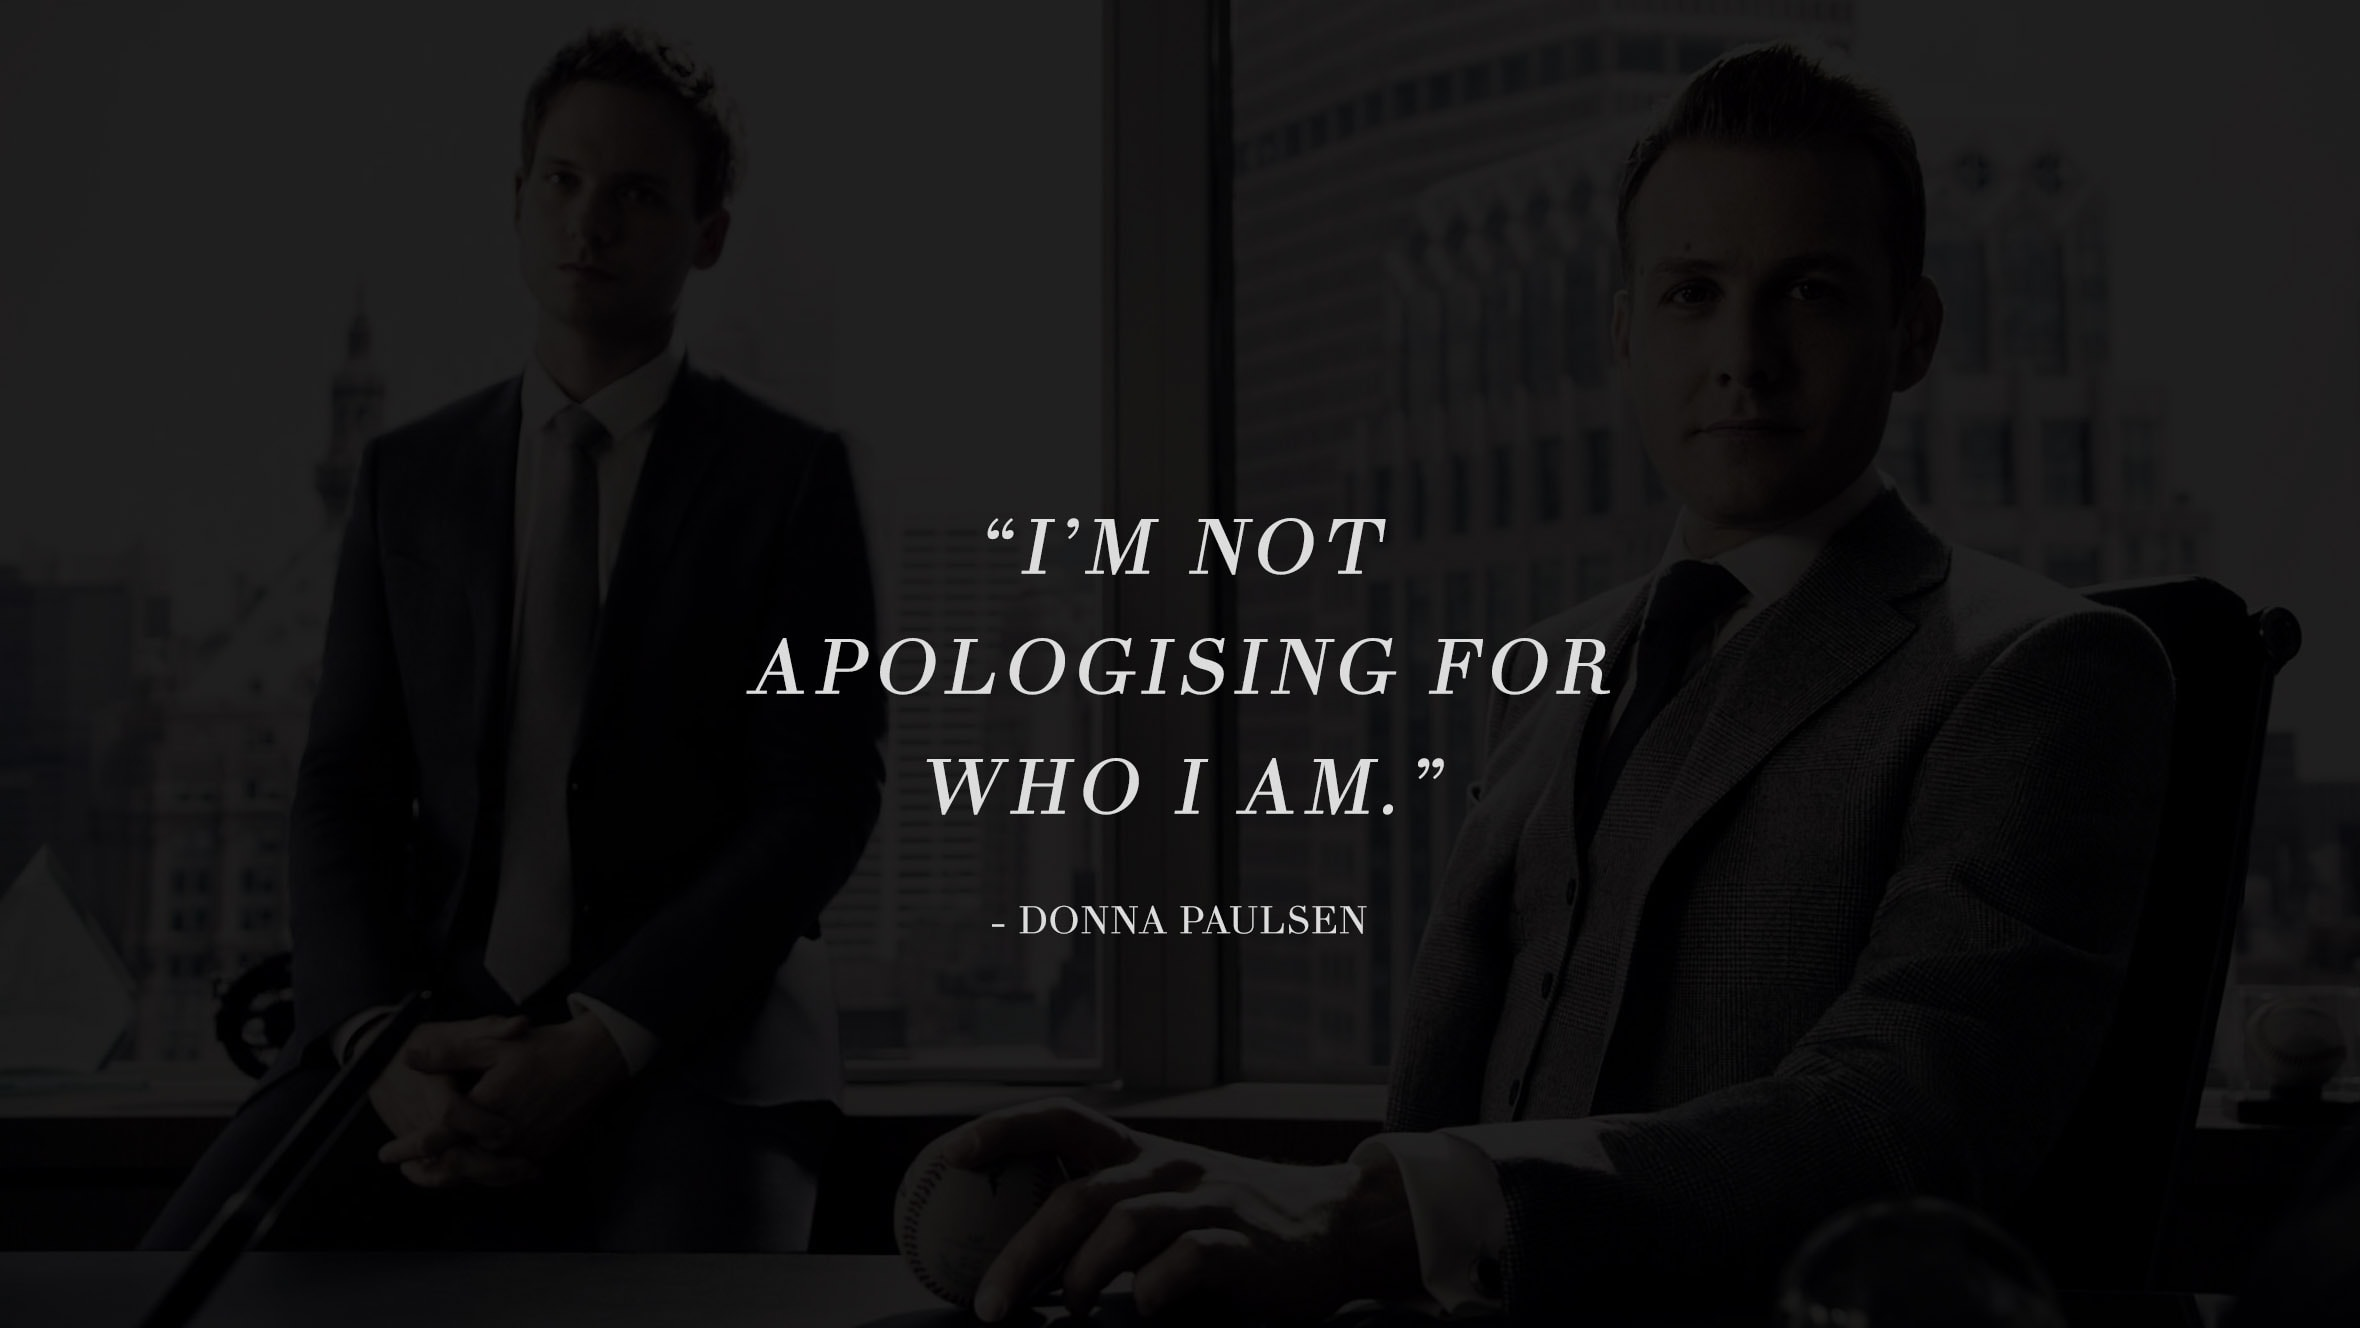 13 Highly Inspiring And Motivating Quotes From The Successful TV Series Suits 11